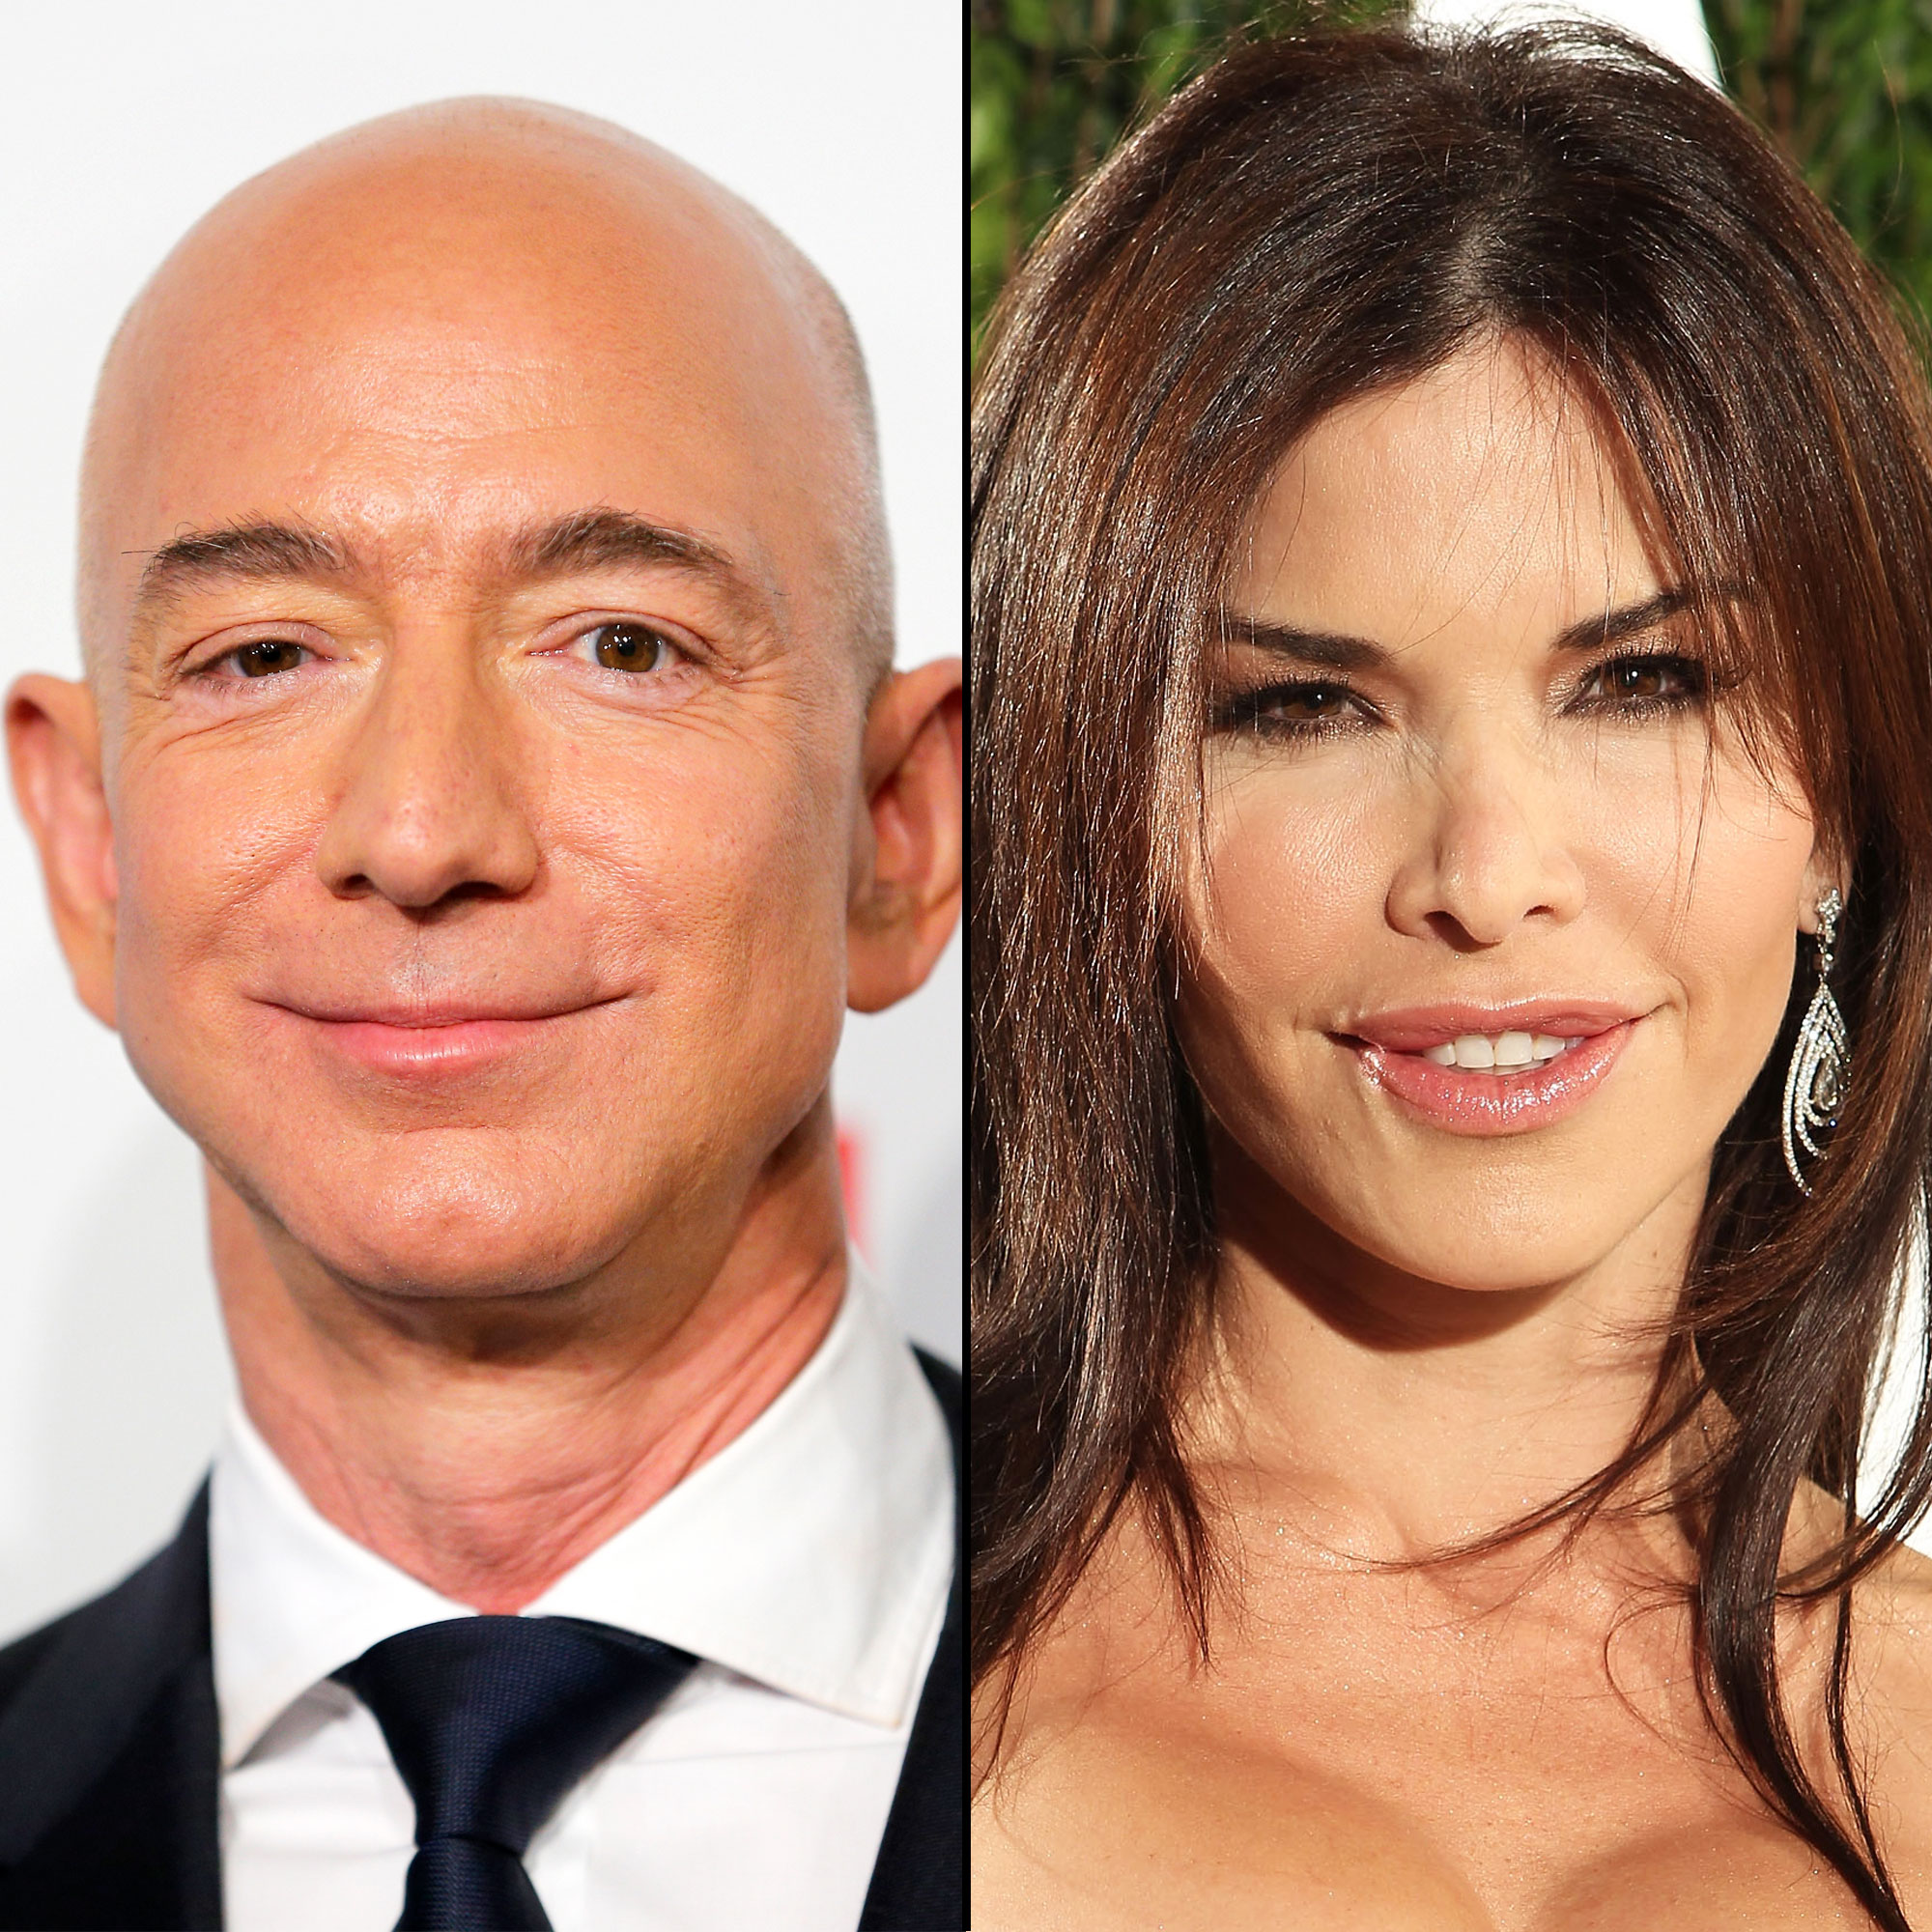 Jeff Bezos and Lauren Sanchez Amazon CEO Jeff Bezos' Divorce and Cheating Scandal: Everything We Know So Far - The National Enquirer reported hours after the divorce news that the businessman had been seeing his friend Patrick Whitesell 's wife, Sánchez, for eight months. According to the magazine, Jeff and the former Extra host were spotted together across five states at various hotels, restaurants and private estates. The report said MacKenzie and talent agent Whitesell were made aware of their spouses' affair in the fall.